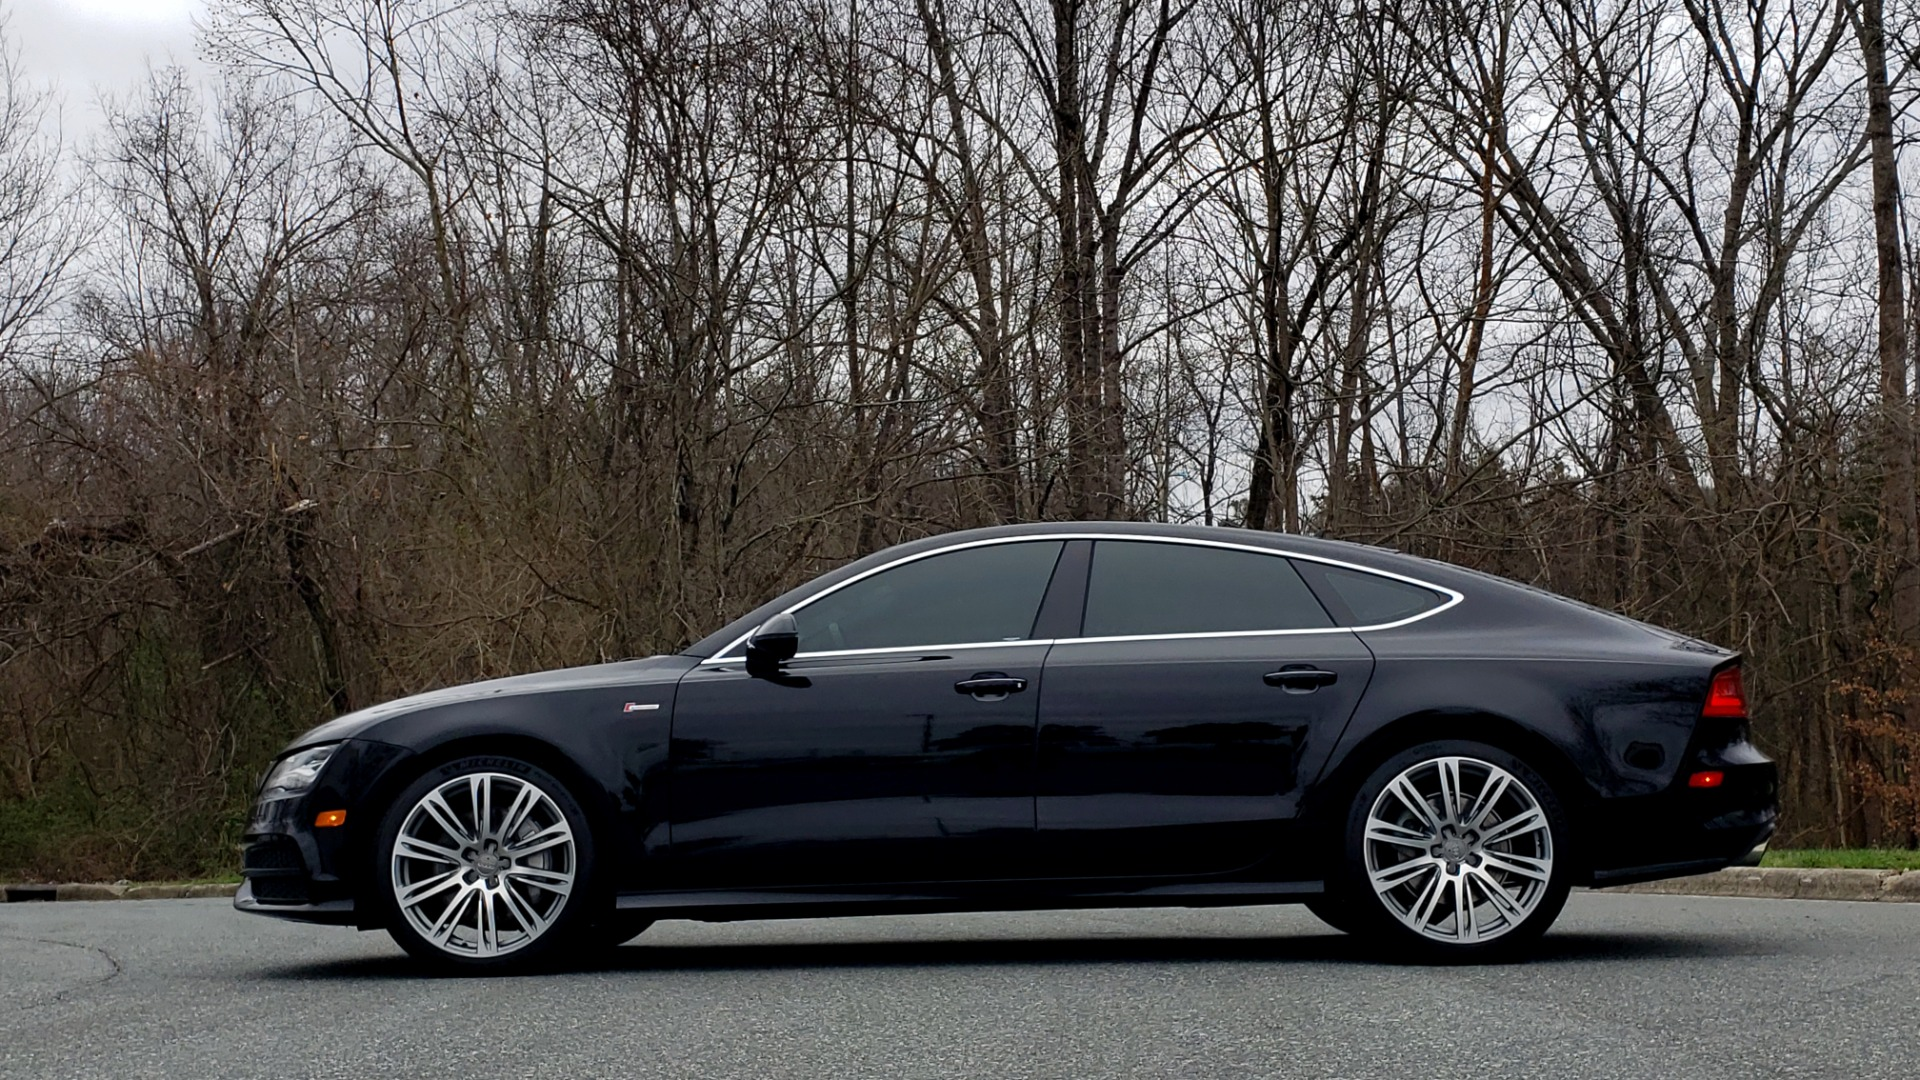 Used 2014 Audi A7 3.0 PRESTIGE / NAV / SUNROOF / BOSE / REARVIEW for sale Sold at Formula Imports in Charlotte NC 28227 3